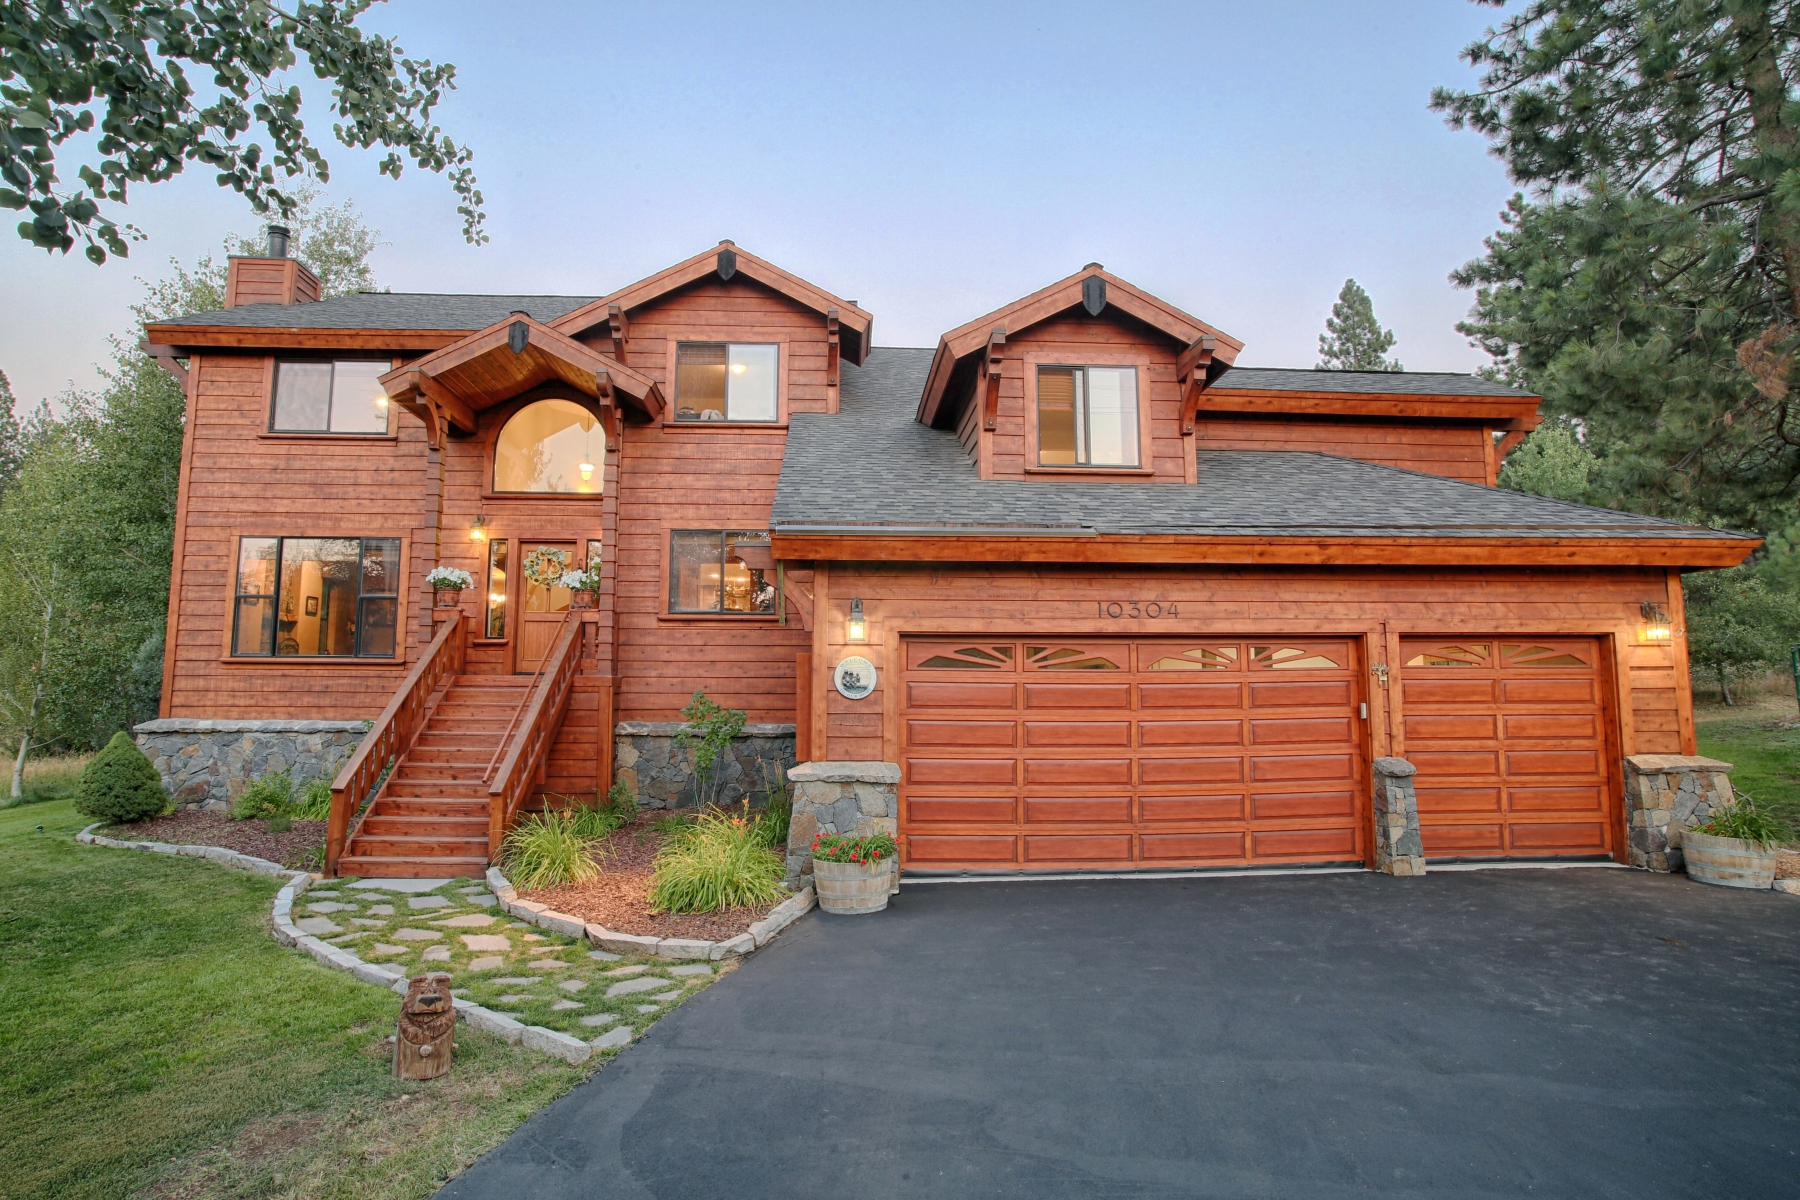 Single Family Home for Active at 10304 Courtenay Lane Truckee, California 96161 United States